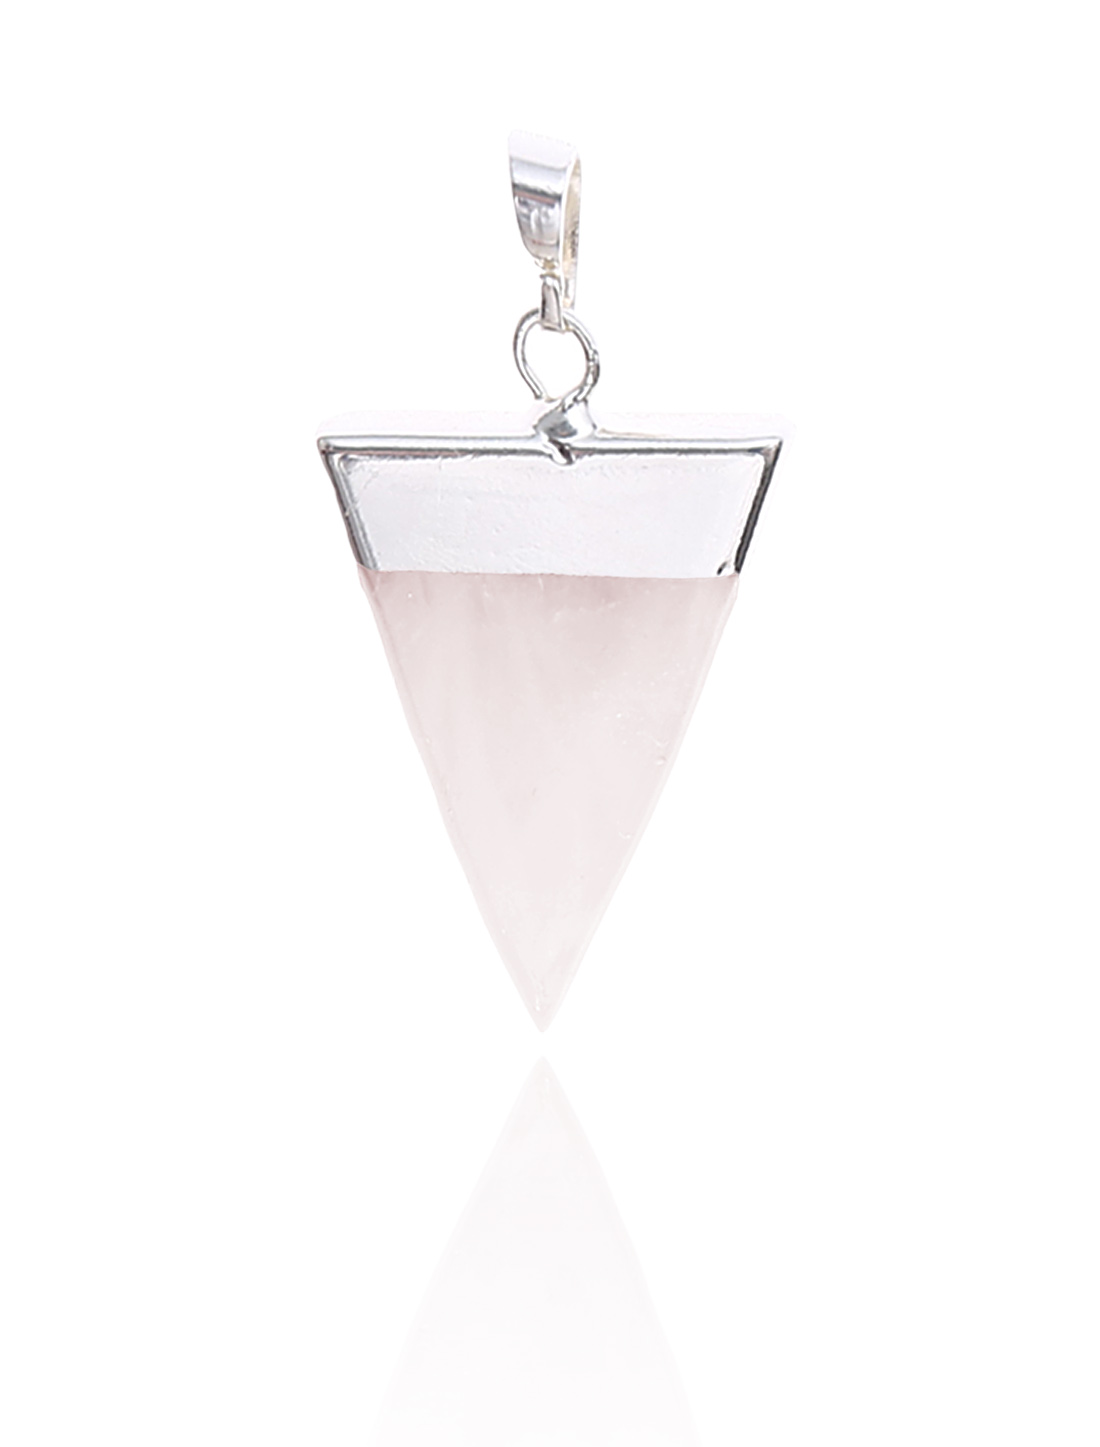 Rose Quartz Pyramid Healing Point Reiki Chakra Gemstone Silver Plated Pendant For Necklace